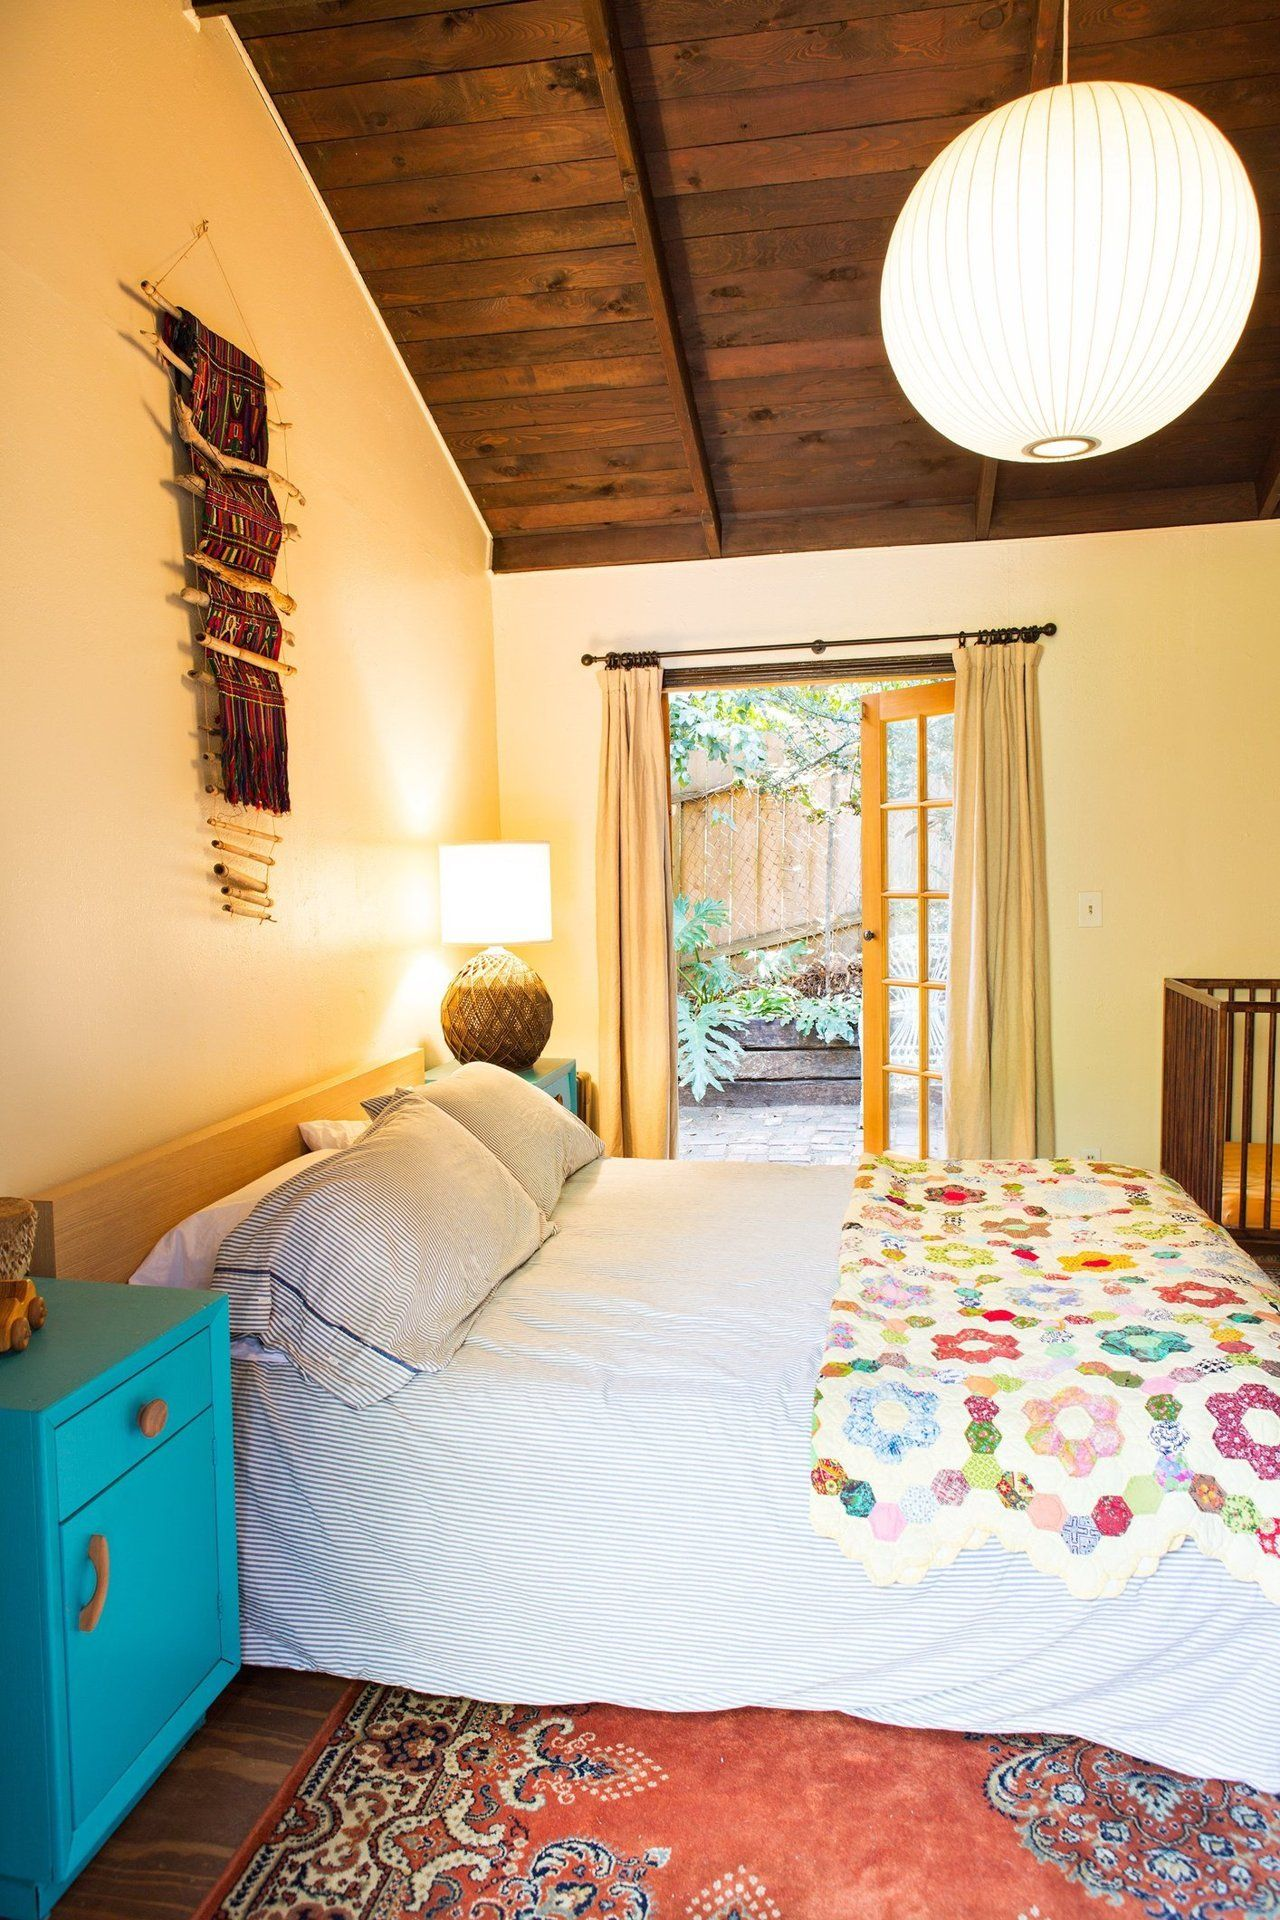 Kristin & Derek\'s Musical Laurel Canyon Lodge | Bedrooms, Design ...